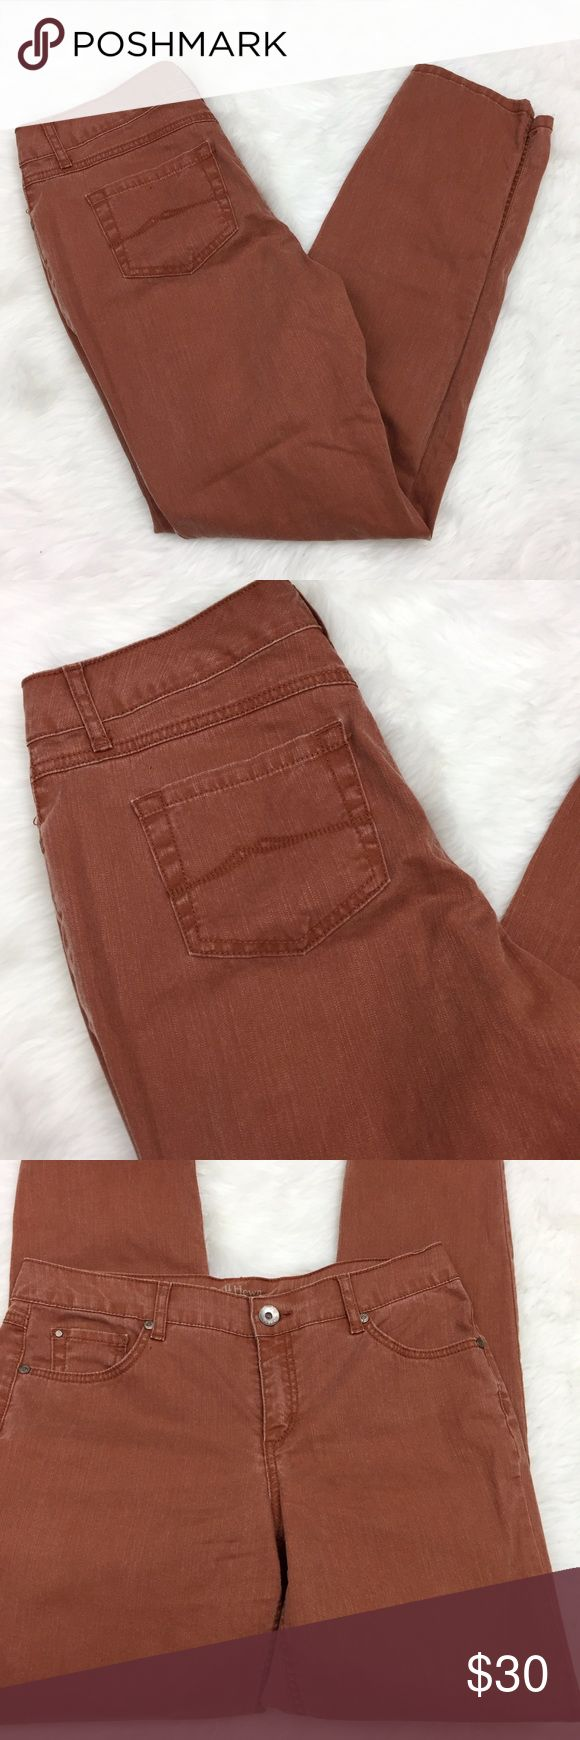 🌺Ruff Hewn Burnt Sienna Skinny Leg Denim Jeans Ruff Hewn Women's Burnt Sienna Skinny Leg Denim Jeans Size 8  Waist measurement across: 17 inches  Length: 41 inches  Inseam: 32 inches  This has been gently worn with no major flaws.  Please refer to photos for more details. Ruff Hewn Jeans Skinny